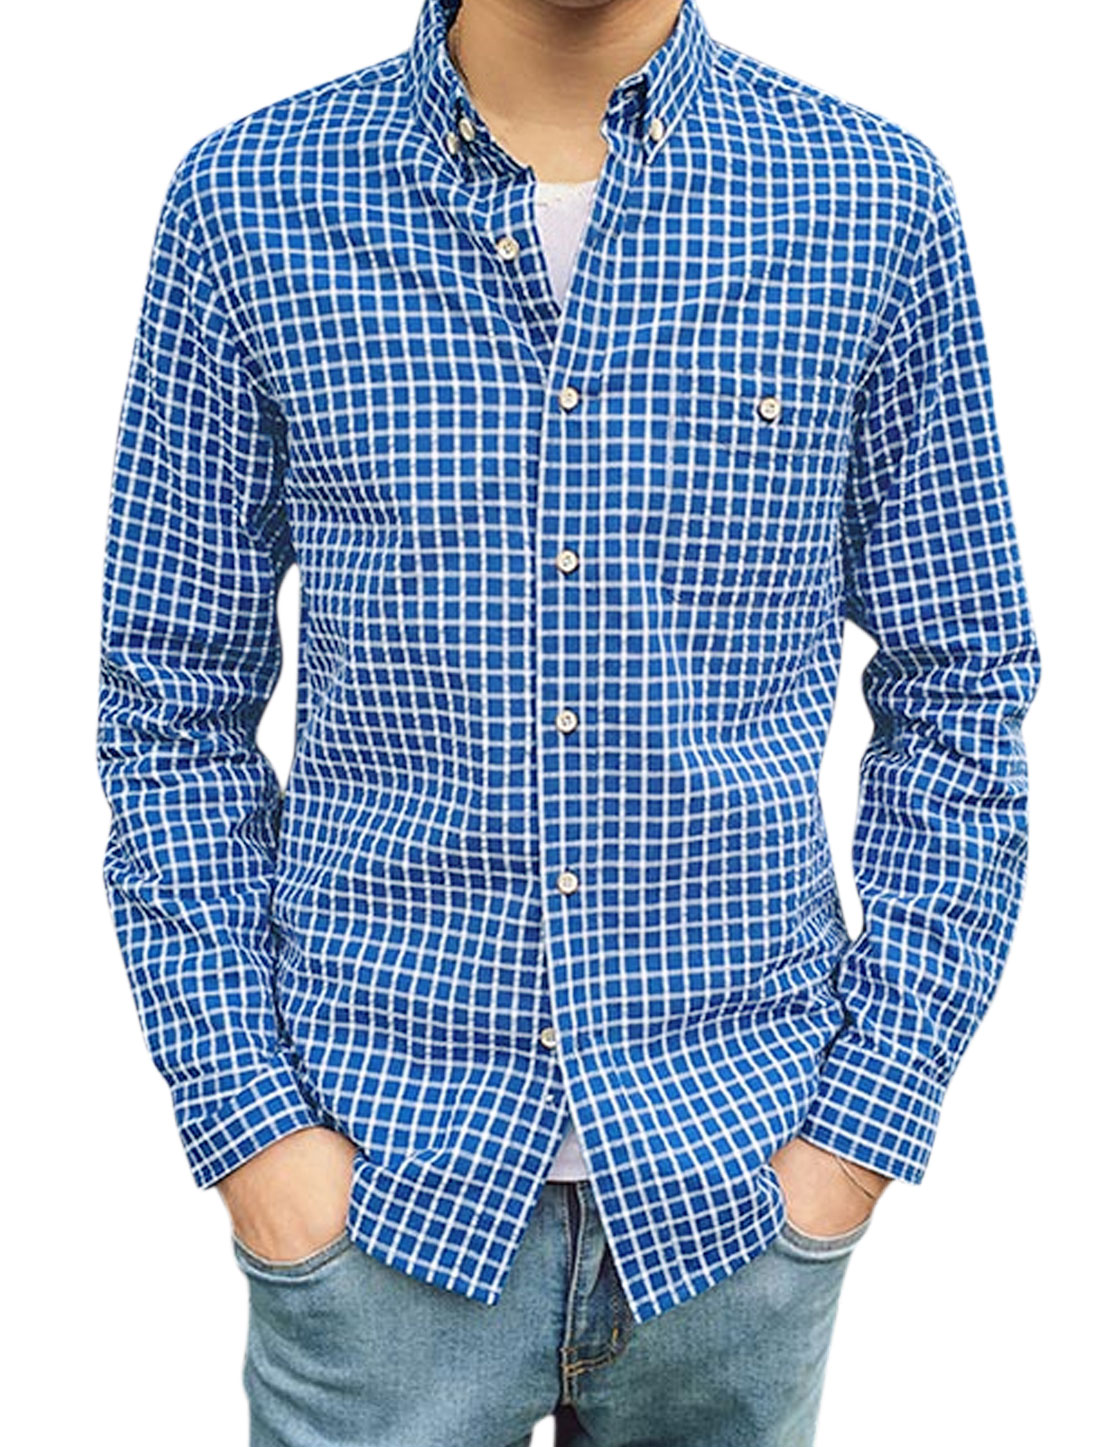 Men Chest Pocket Point Collar Single Breasted Plaids Shirt Royal Blue M